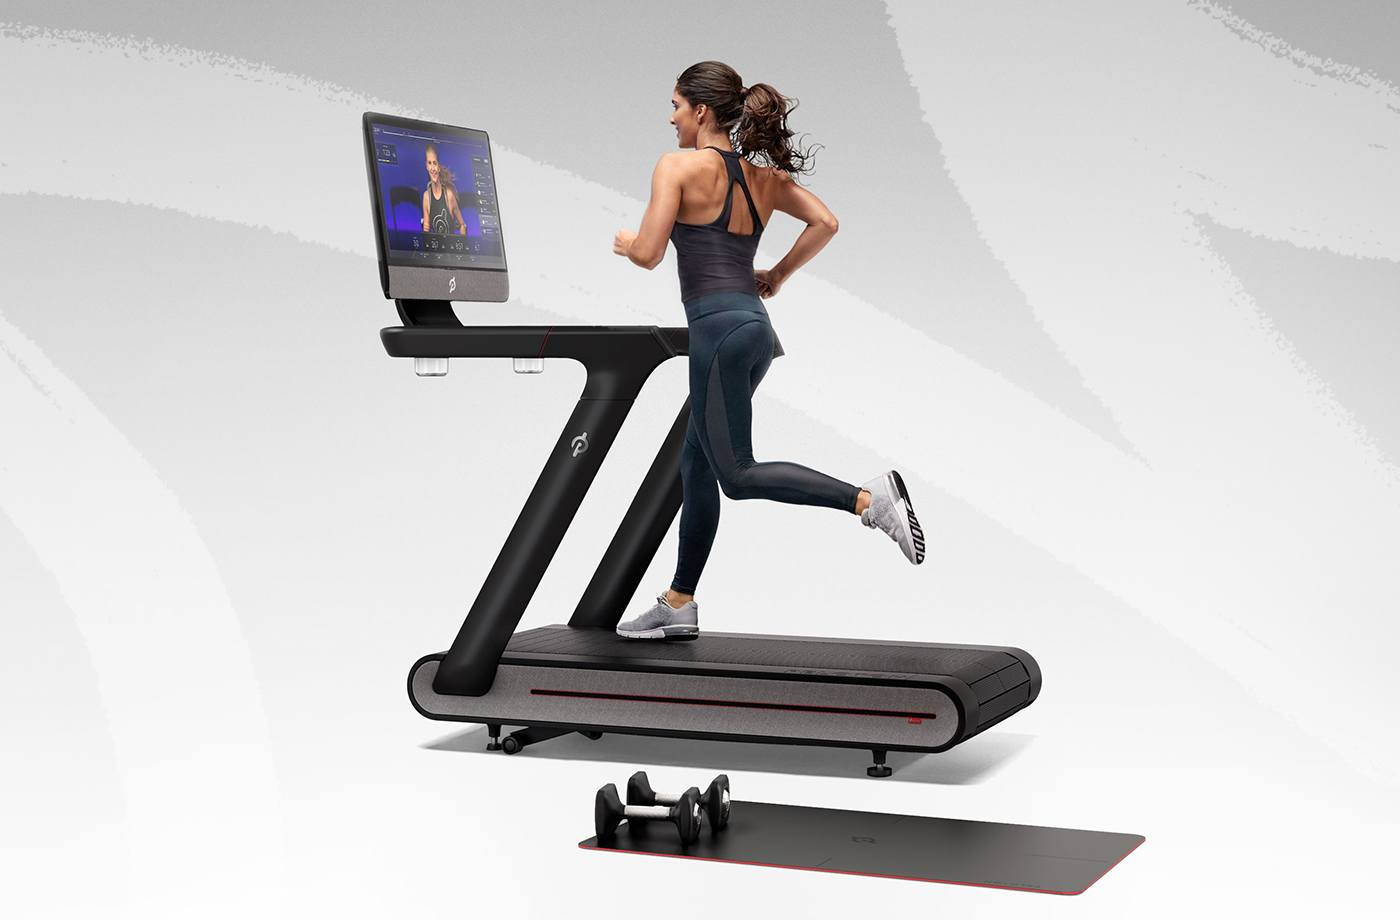 Thumbnail for Peloton's *huge* funding round means more sweaty workouts are coming for your at-home studio